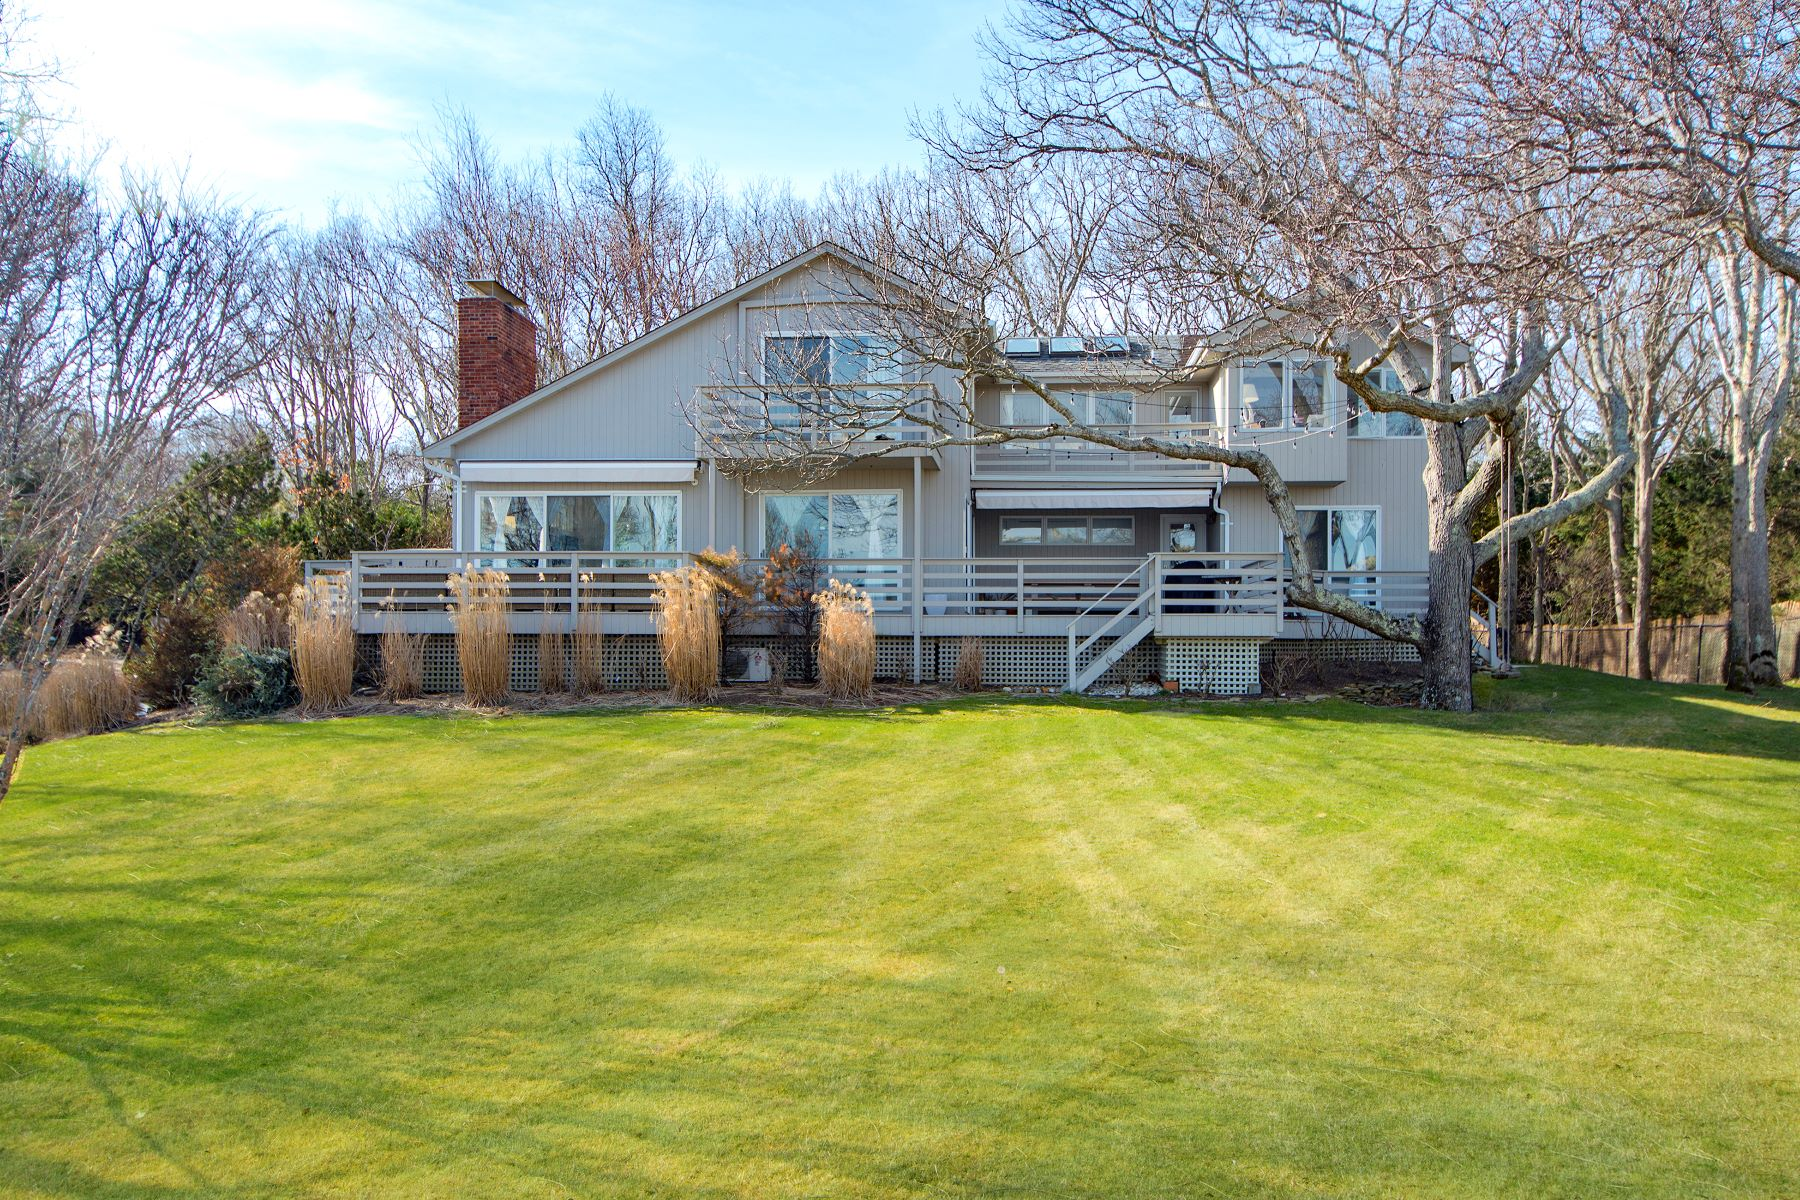 Single Family Homes for Sale at Private Waterfront on Gardiner's Bay 46 Hedges Banks Drive East Hampton, New York 11937 United States